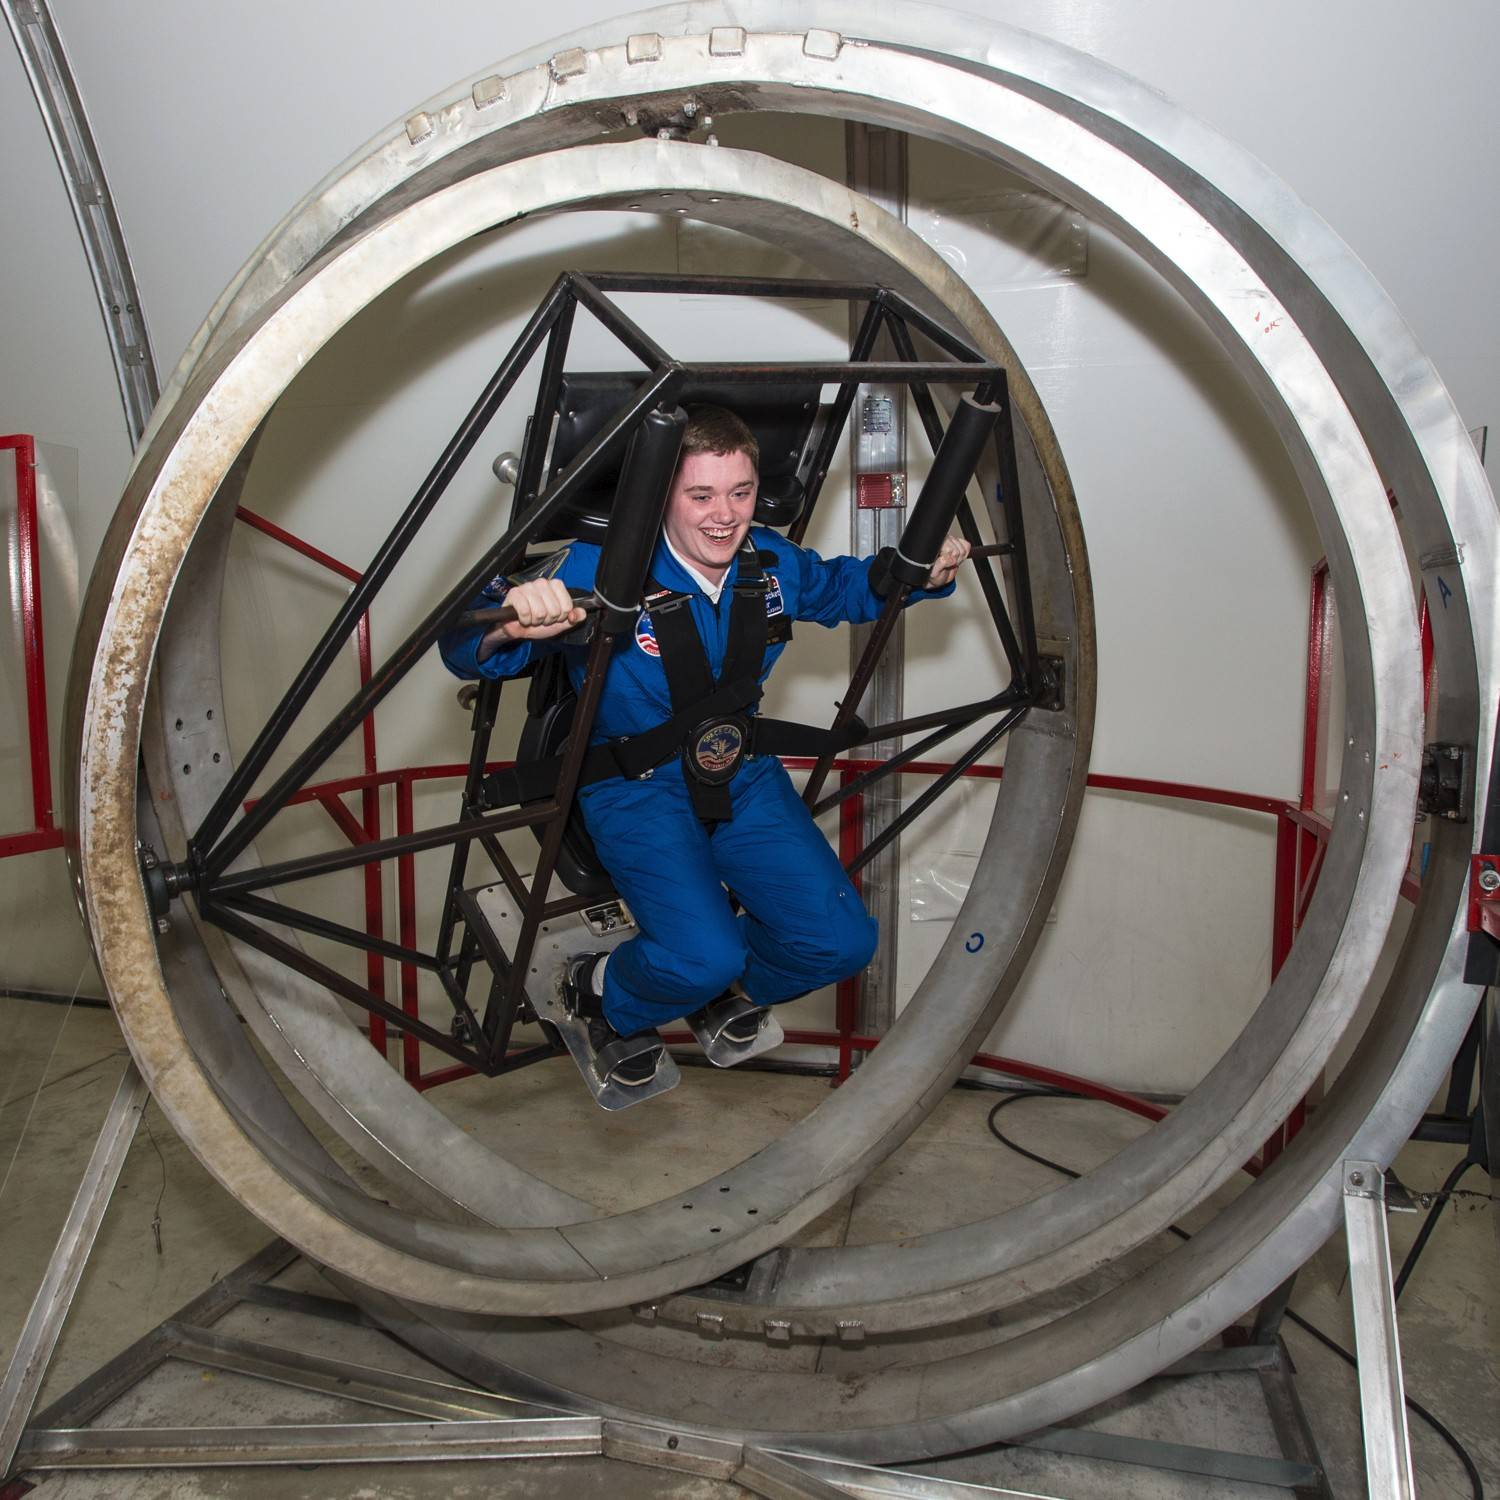 Ryan Hunt of Des Plaines is in a Multi-Axis Trainer that simulates the disorientation one would feel in a tumble spin during re-entry into the Earth's atmosphere.